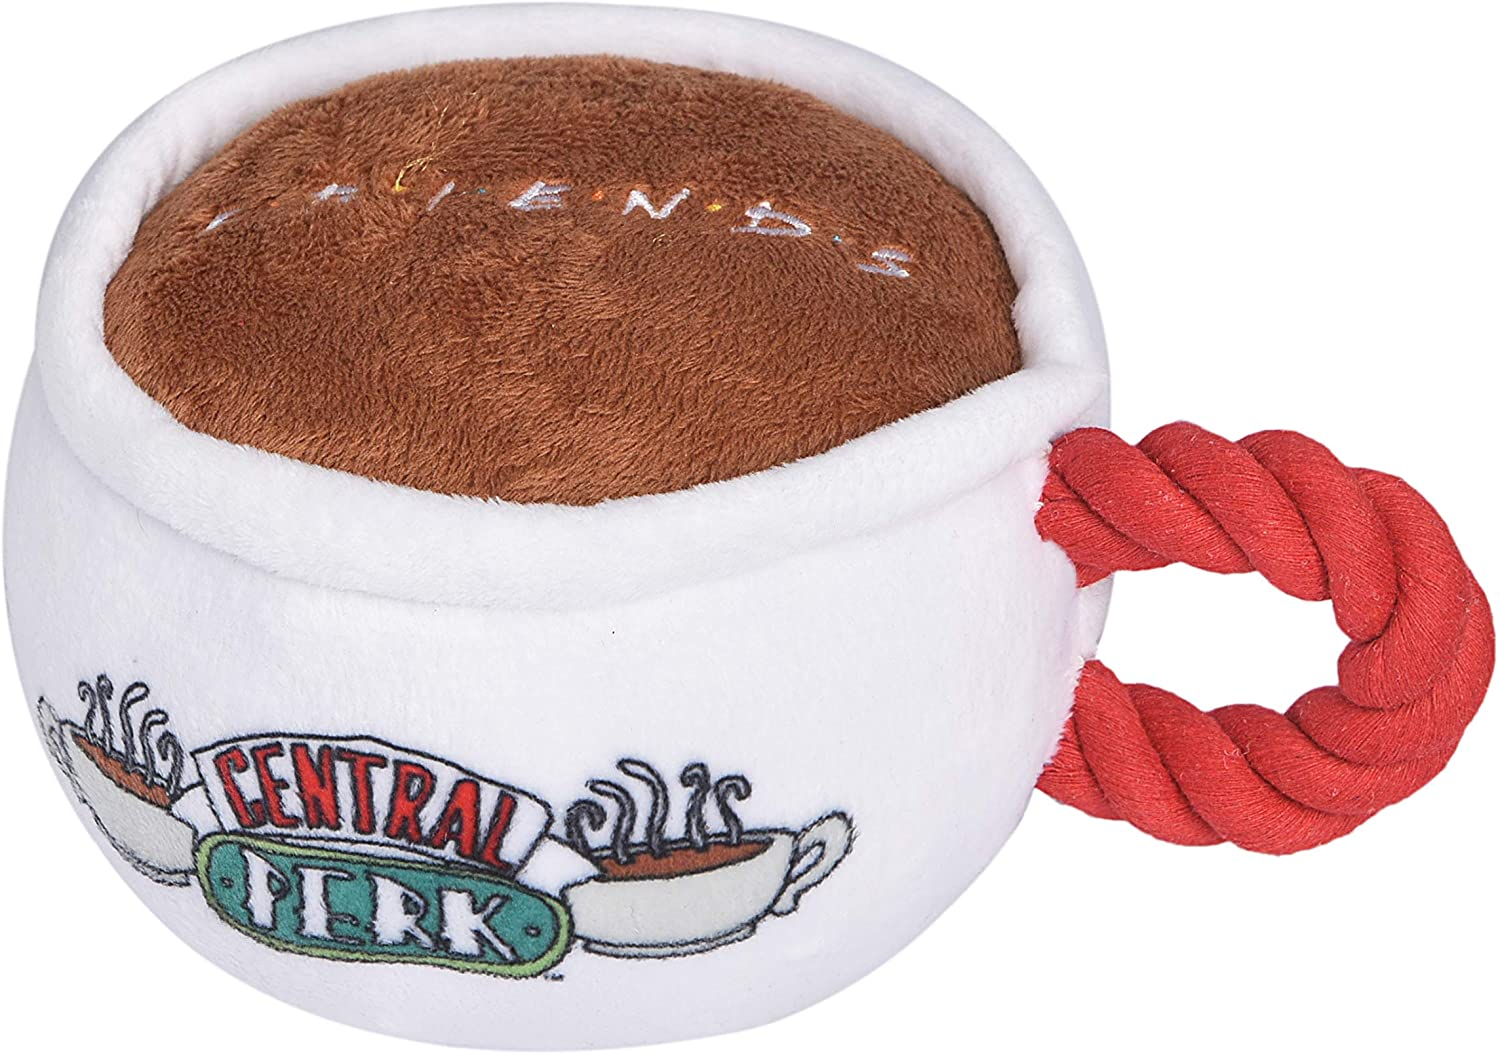 FETCH FOR PETS FRIENDS: CENTRAL PERK COFFEE MUG PLUSH TOY